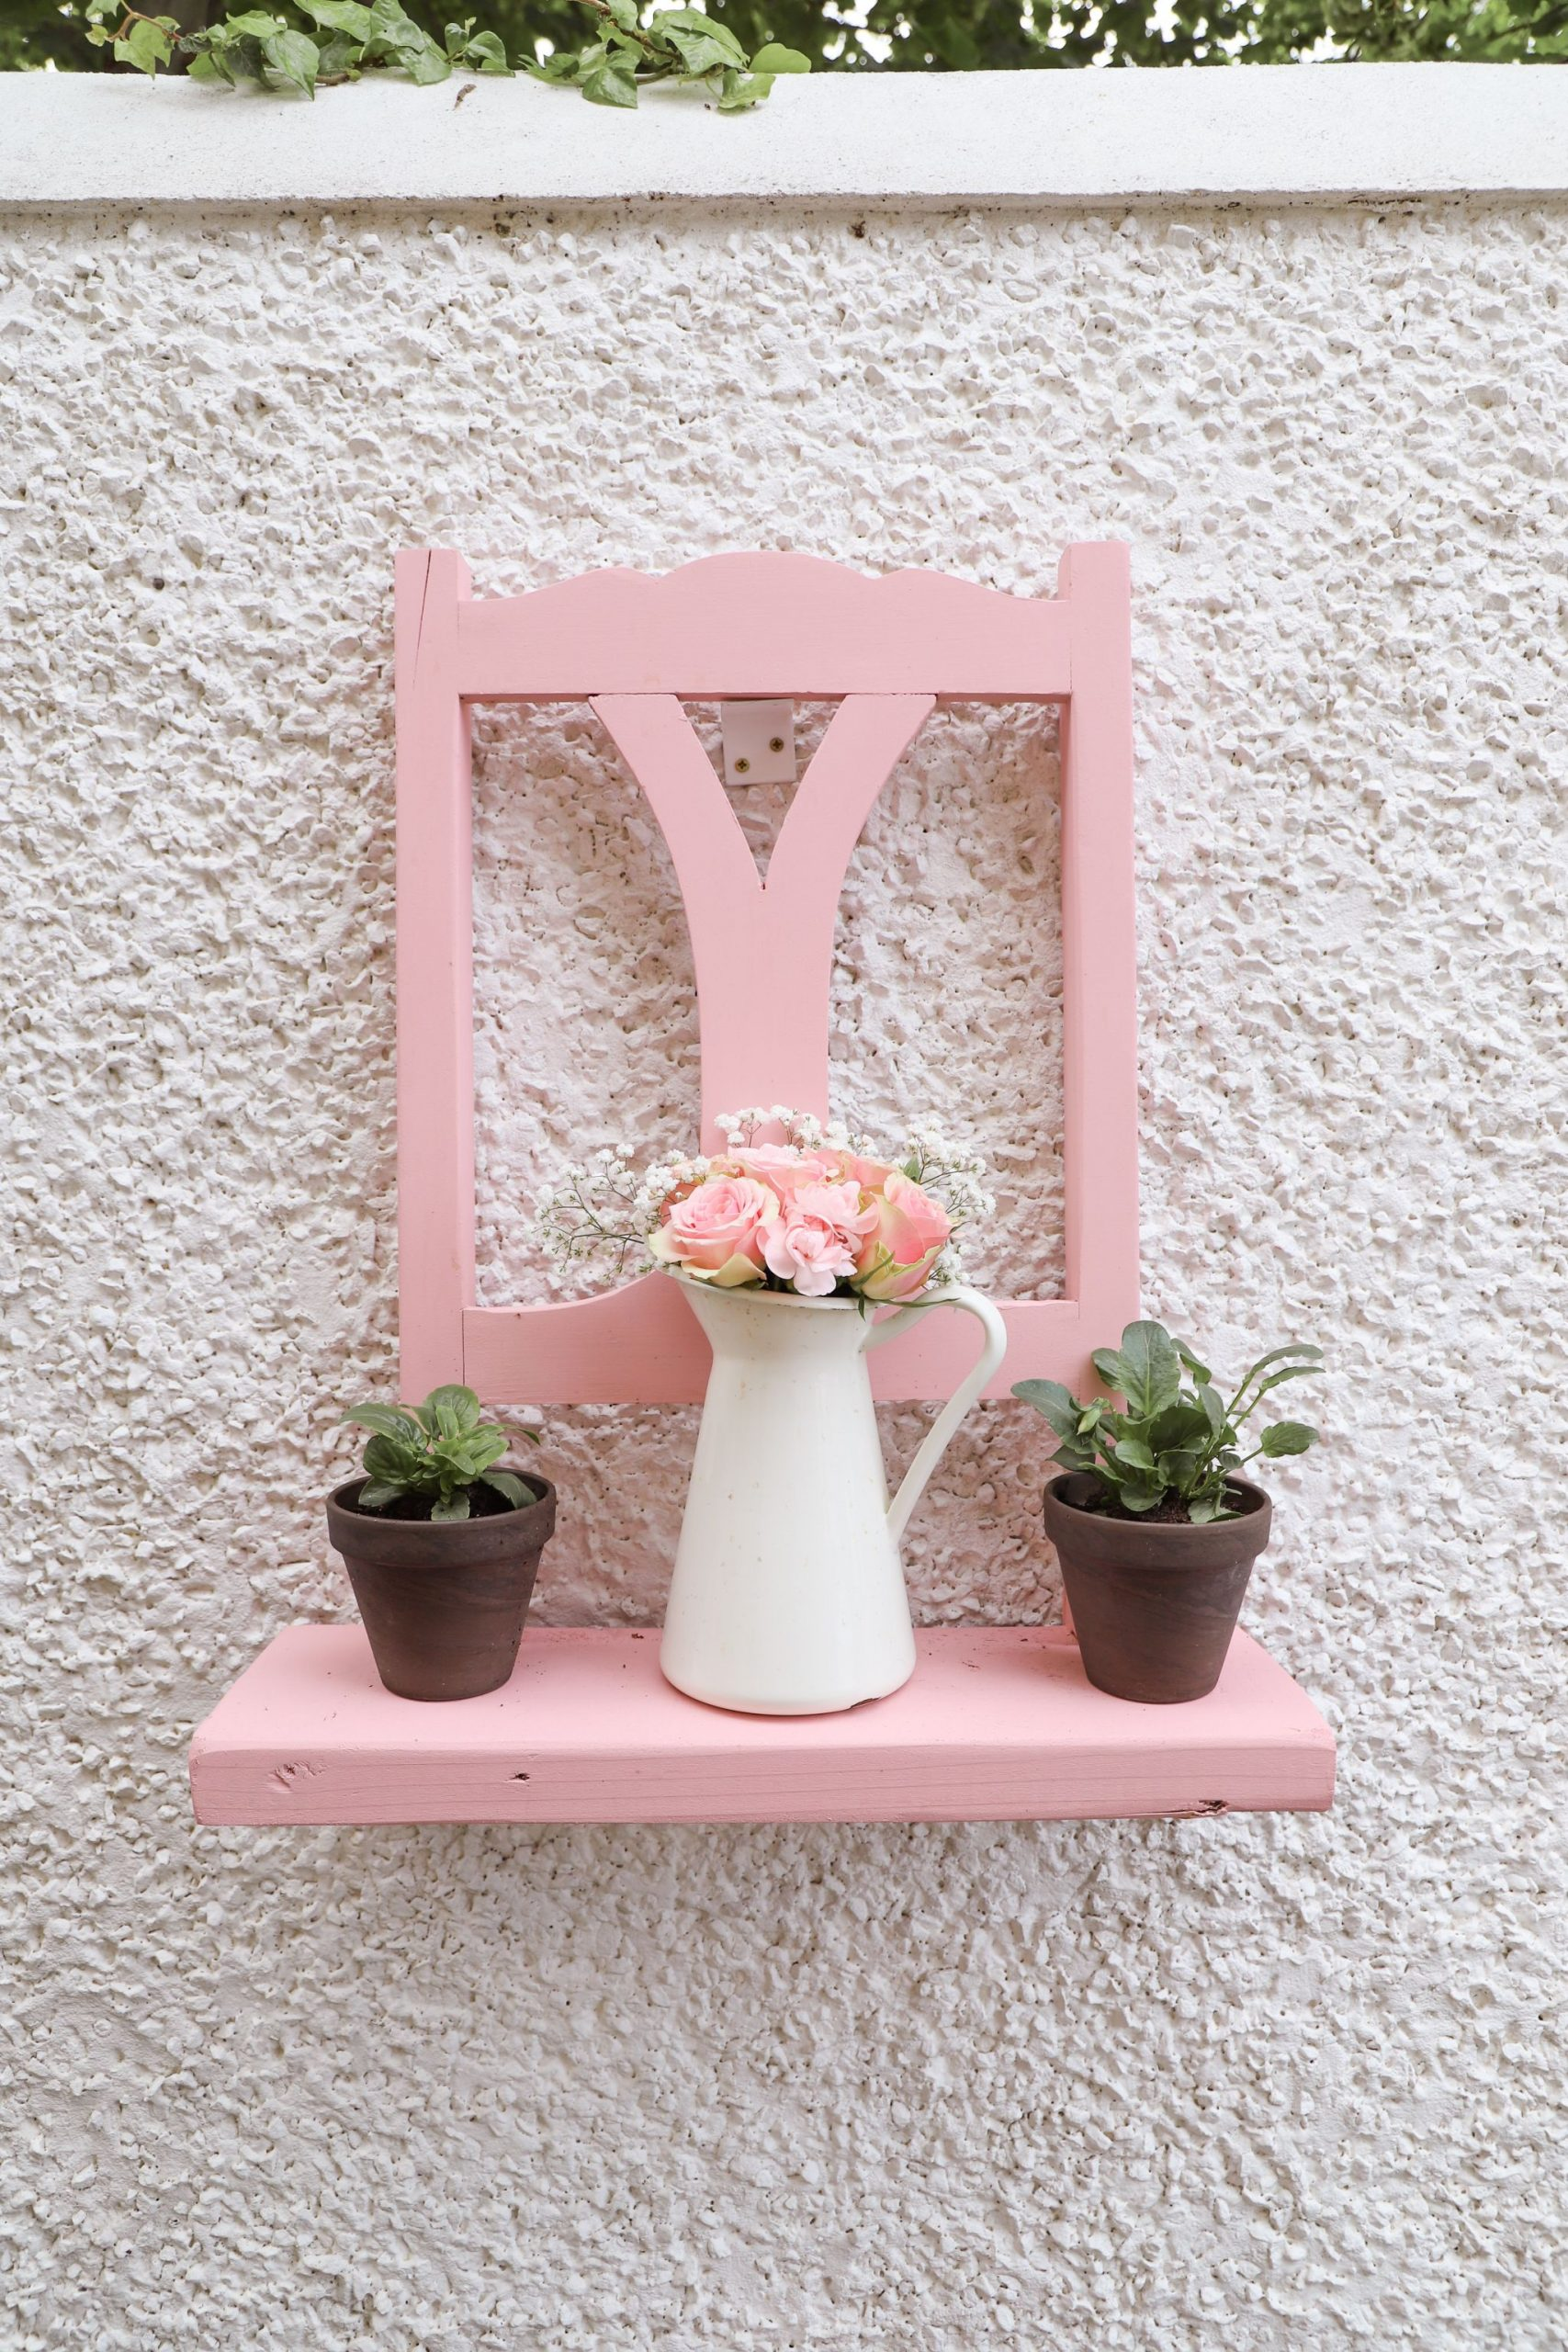 How to turn a chair into a garden planter and a shelf